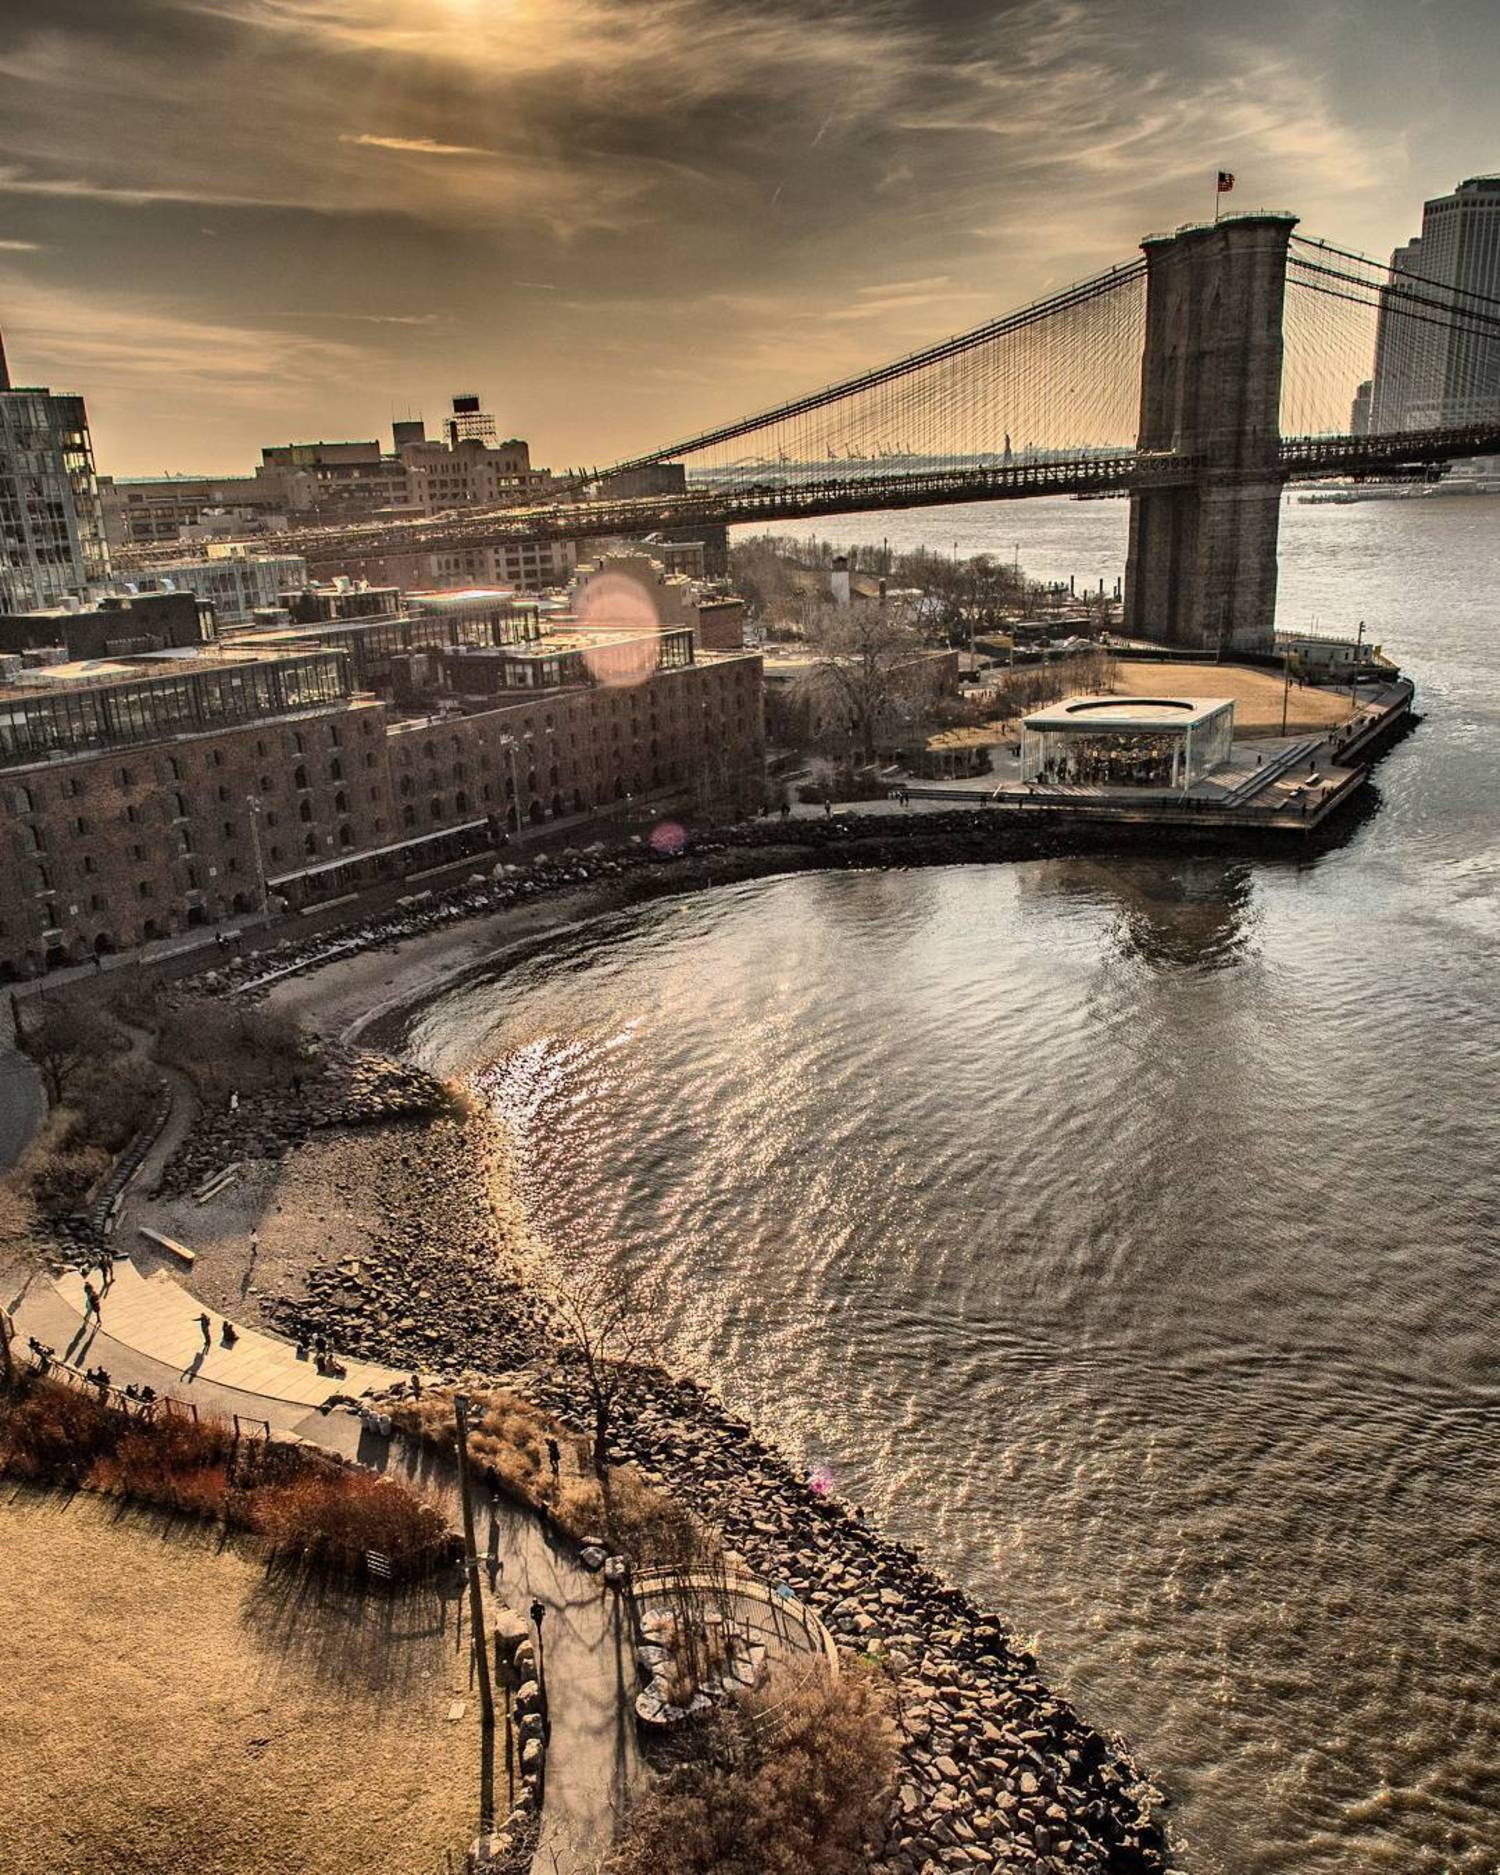 Looking over at Dumbo and Brooklyn Bridge from Manhattan Bridge!